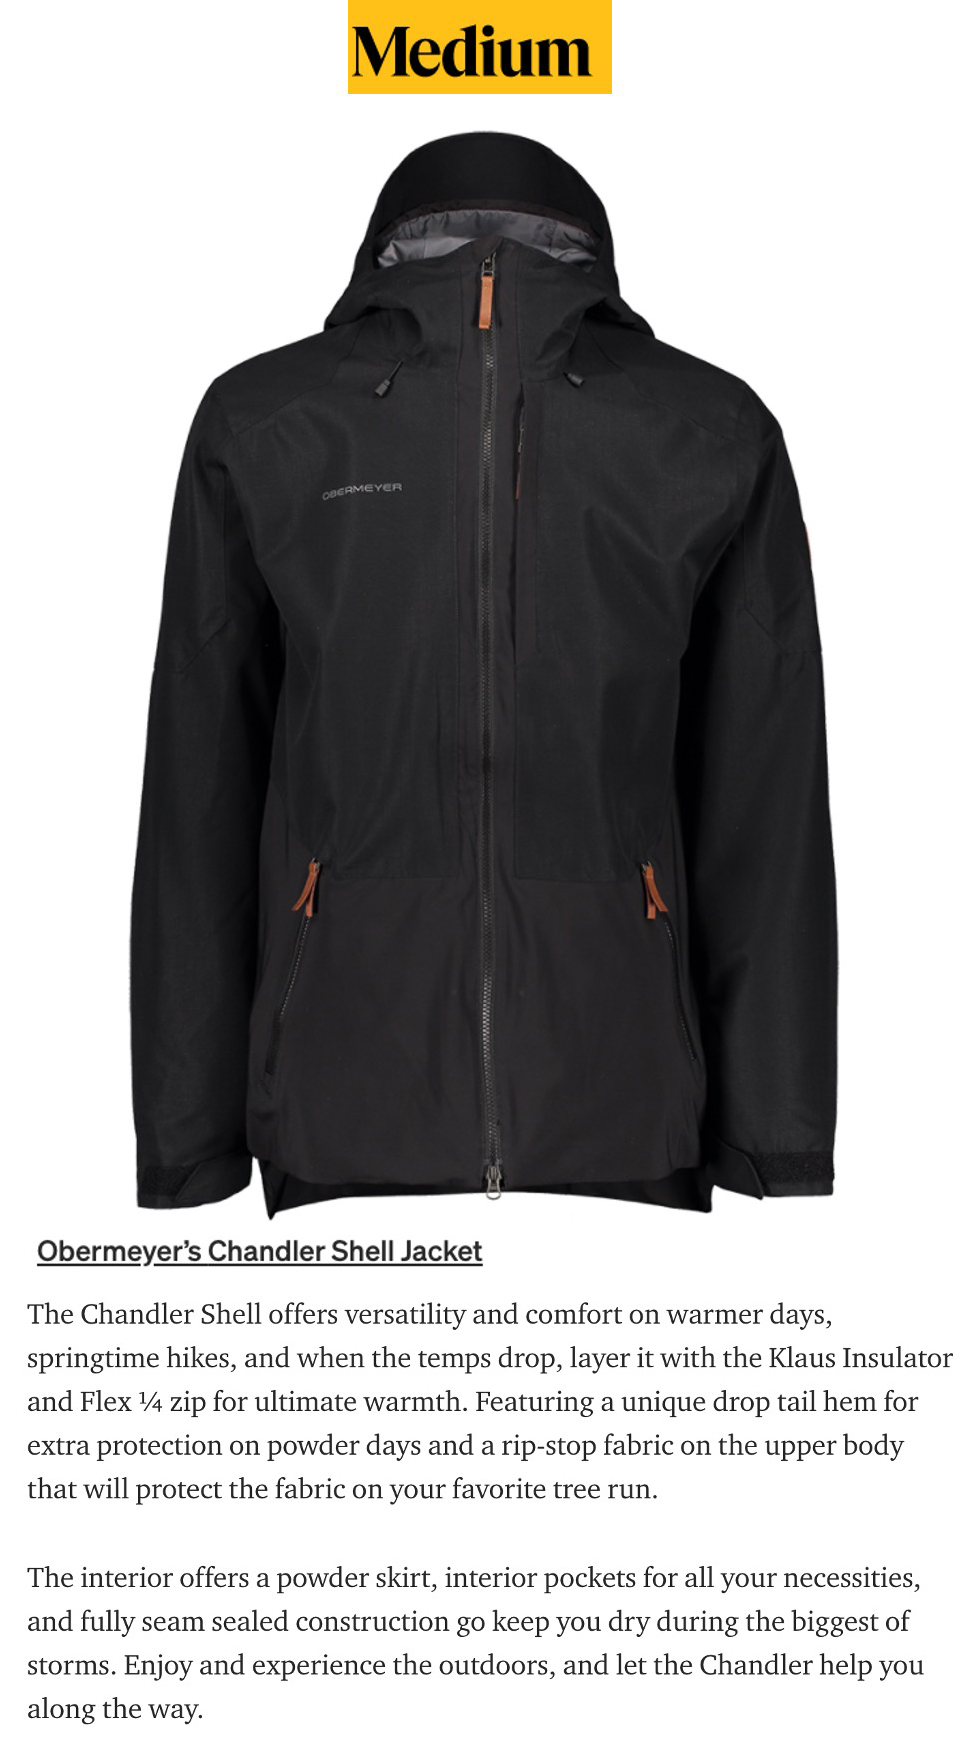 The Chandler Jacket